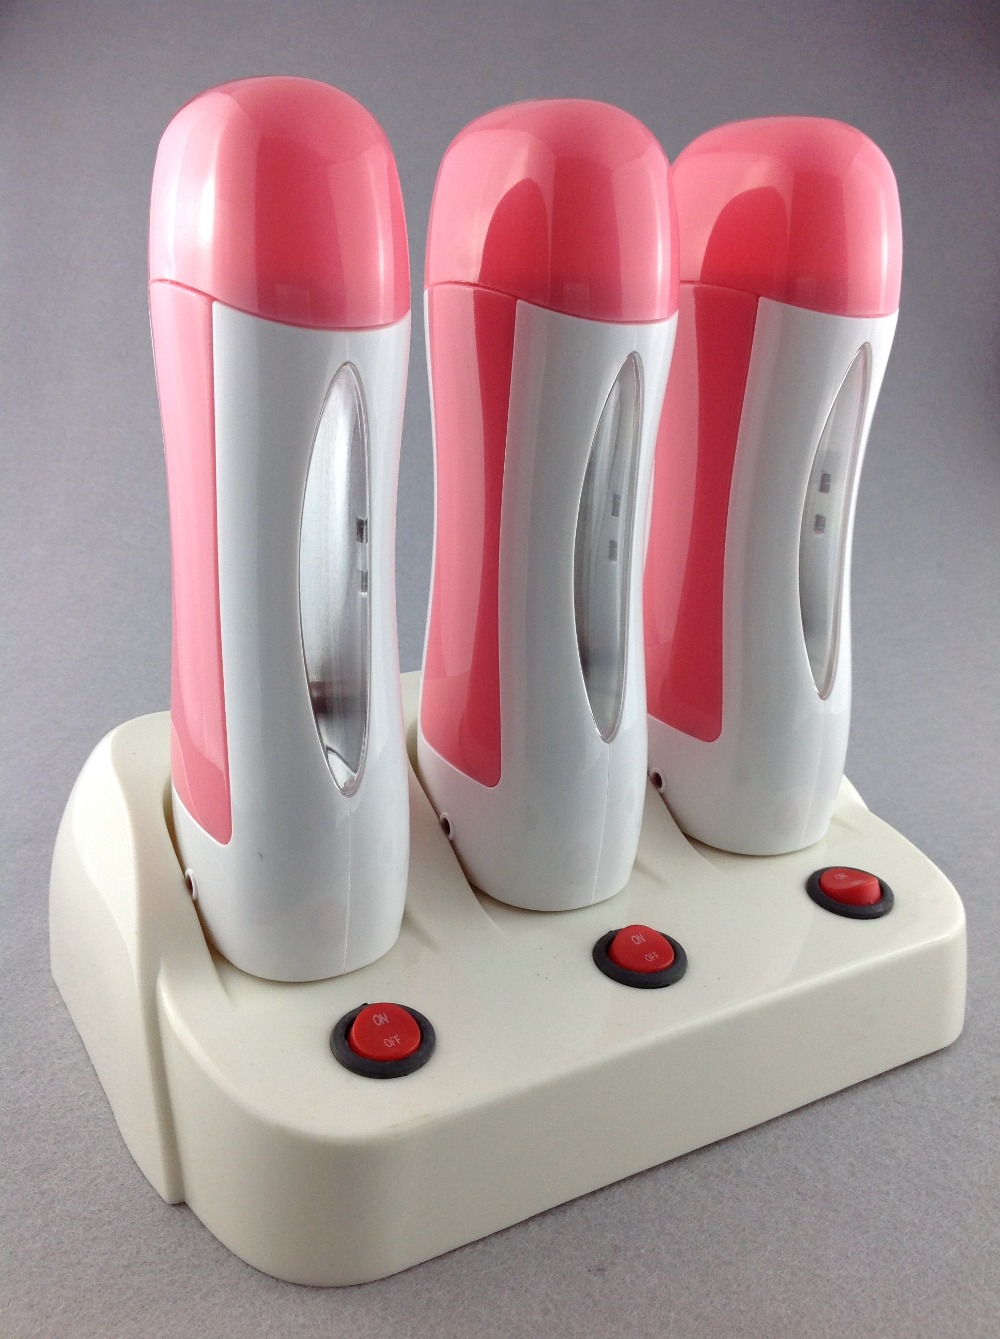 Wax Heater Set Two Seats 110 220 240V Depilation Wax High Quality Epilator Hair Removal Strawberry And Rose Wax Strips 100 in Epilators from Home Appliances